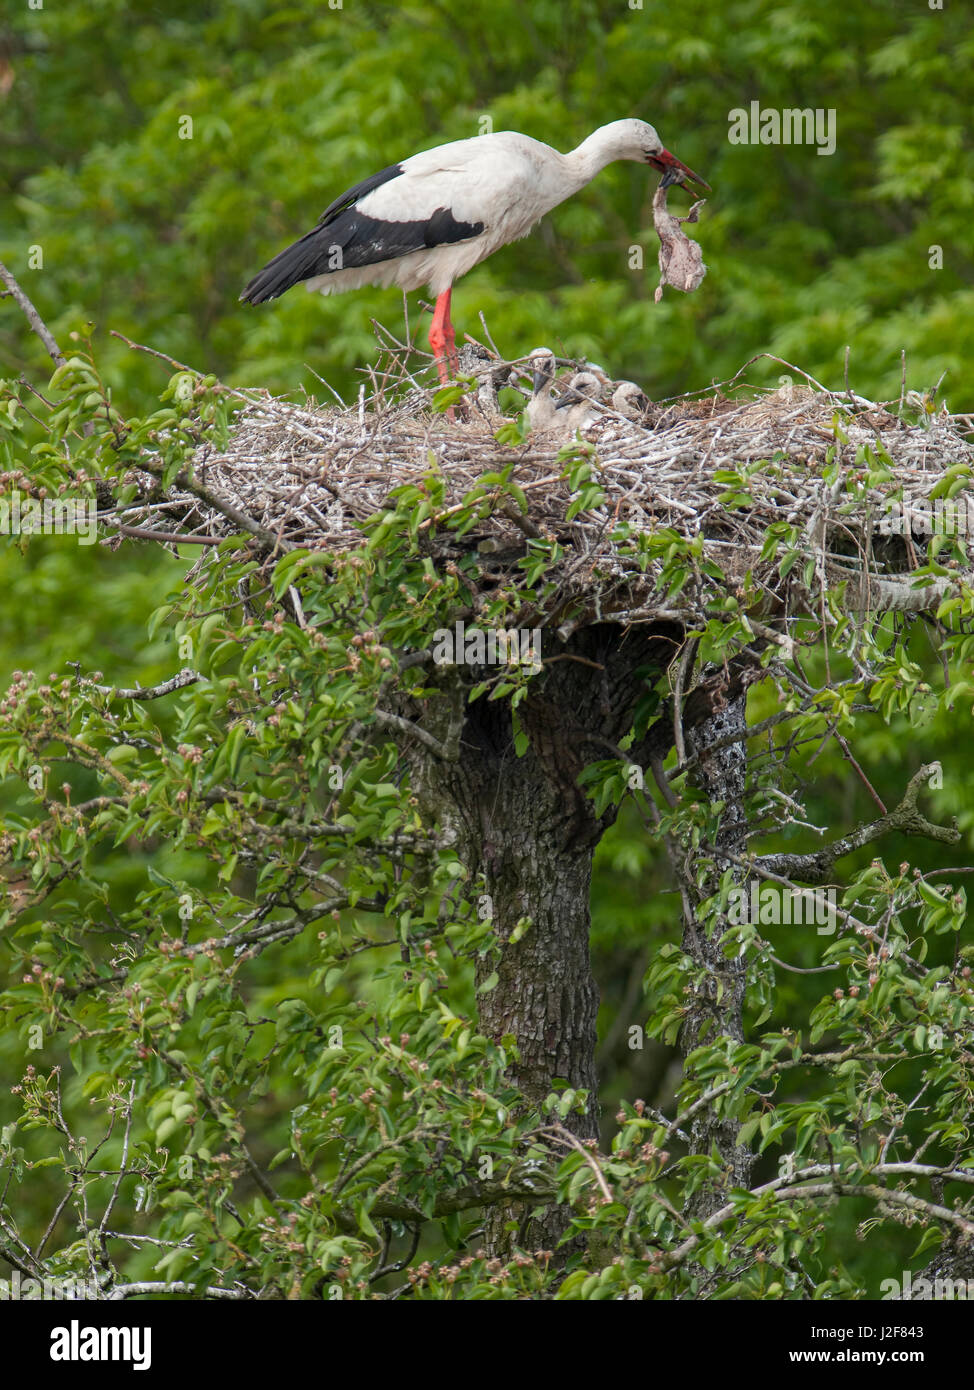 White Stork with two juveniles on nest. Parents tries eating its own dead chick. Europe - Stock Image